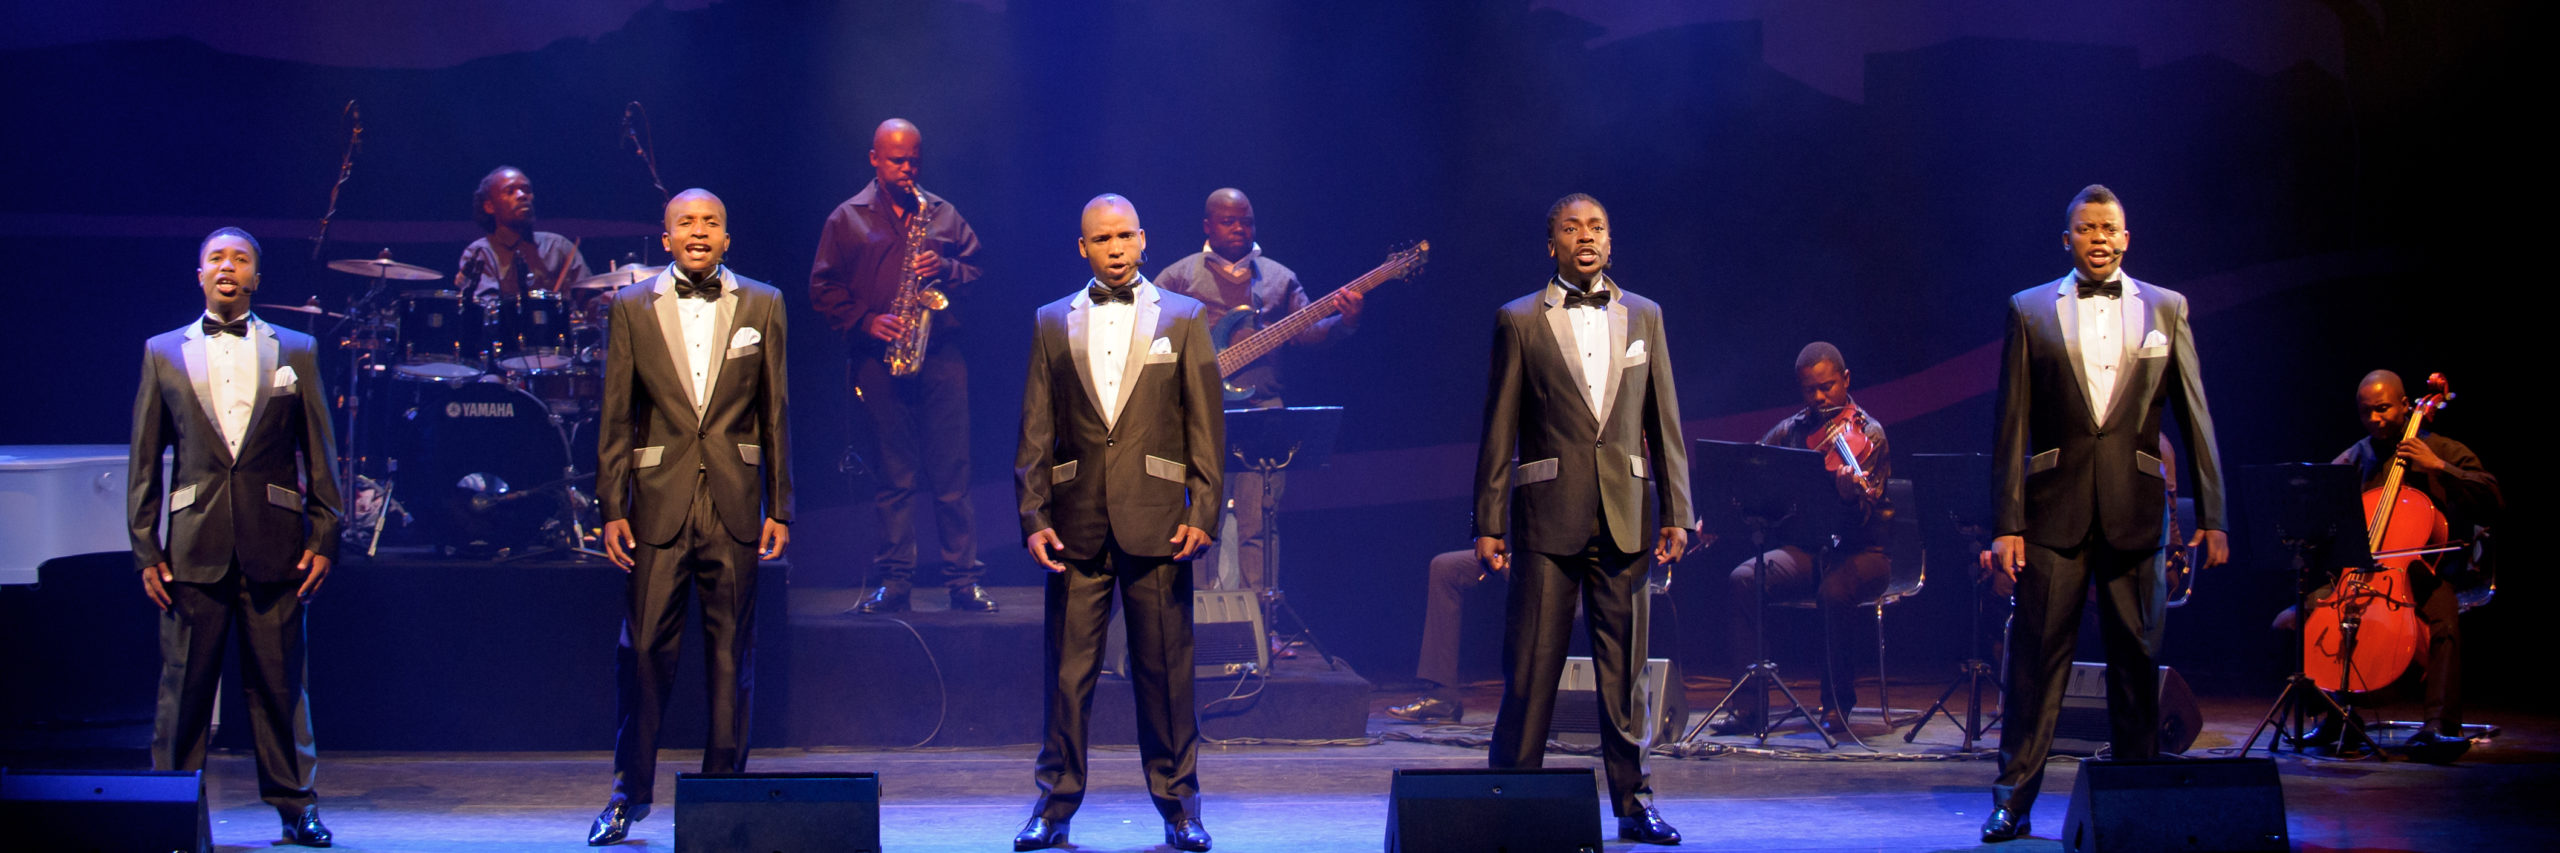 Soweto Boys Choir-337